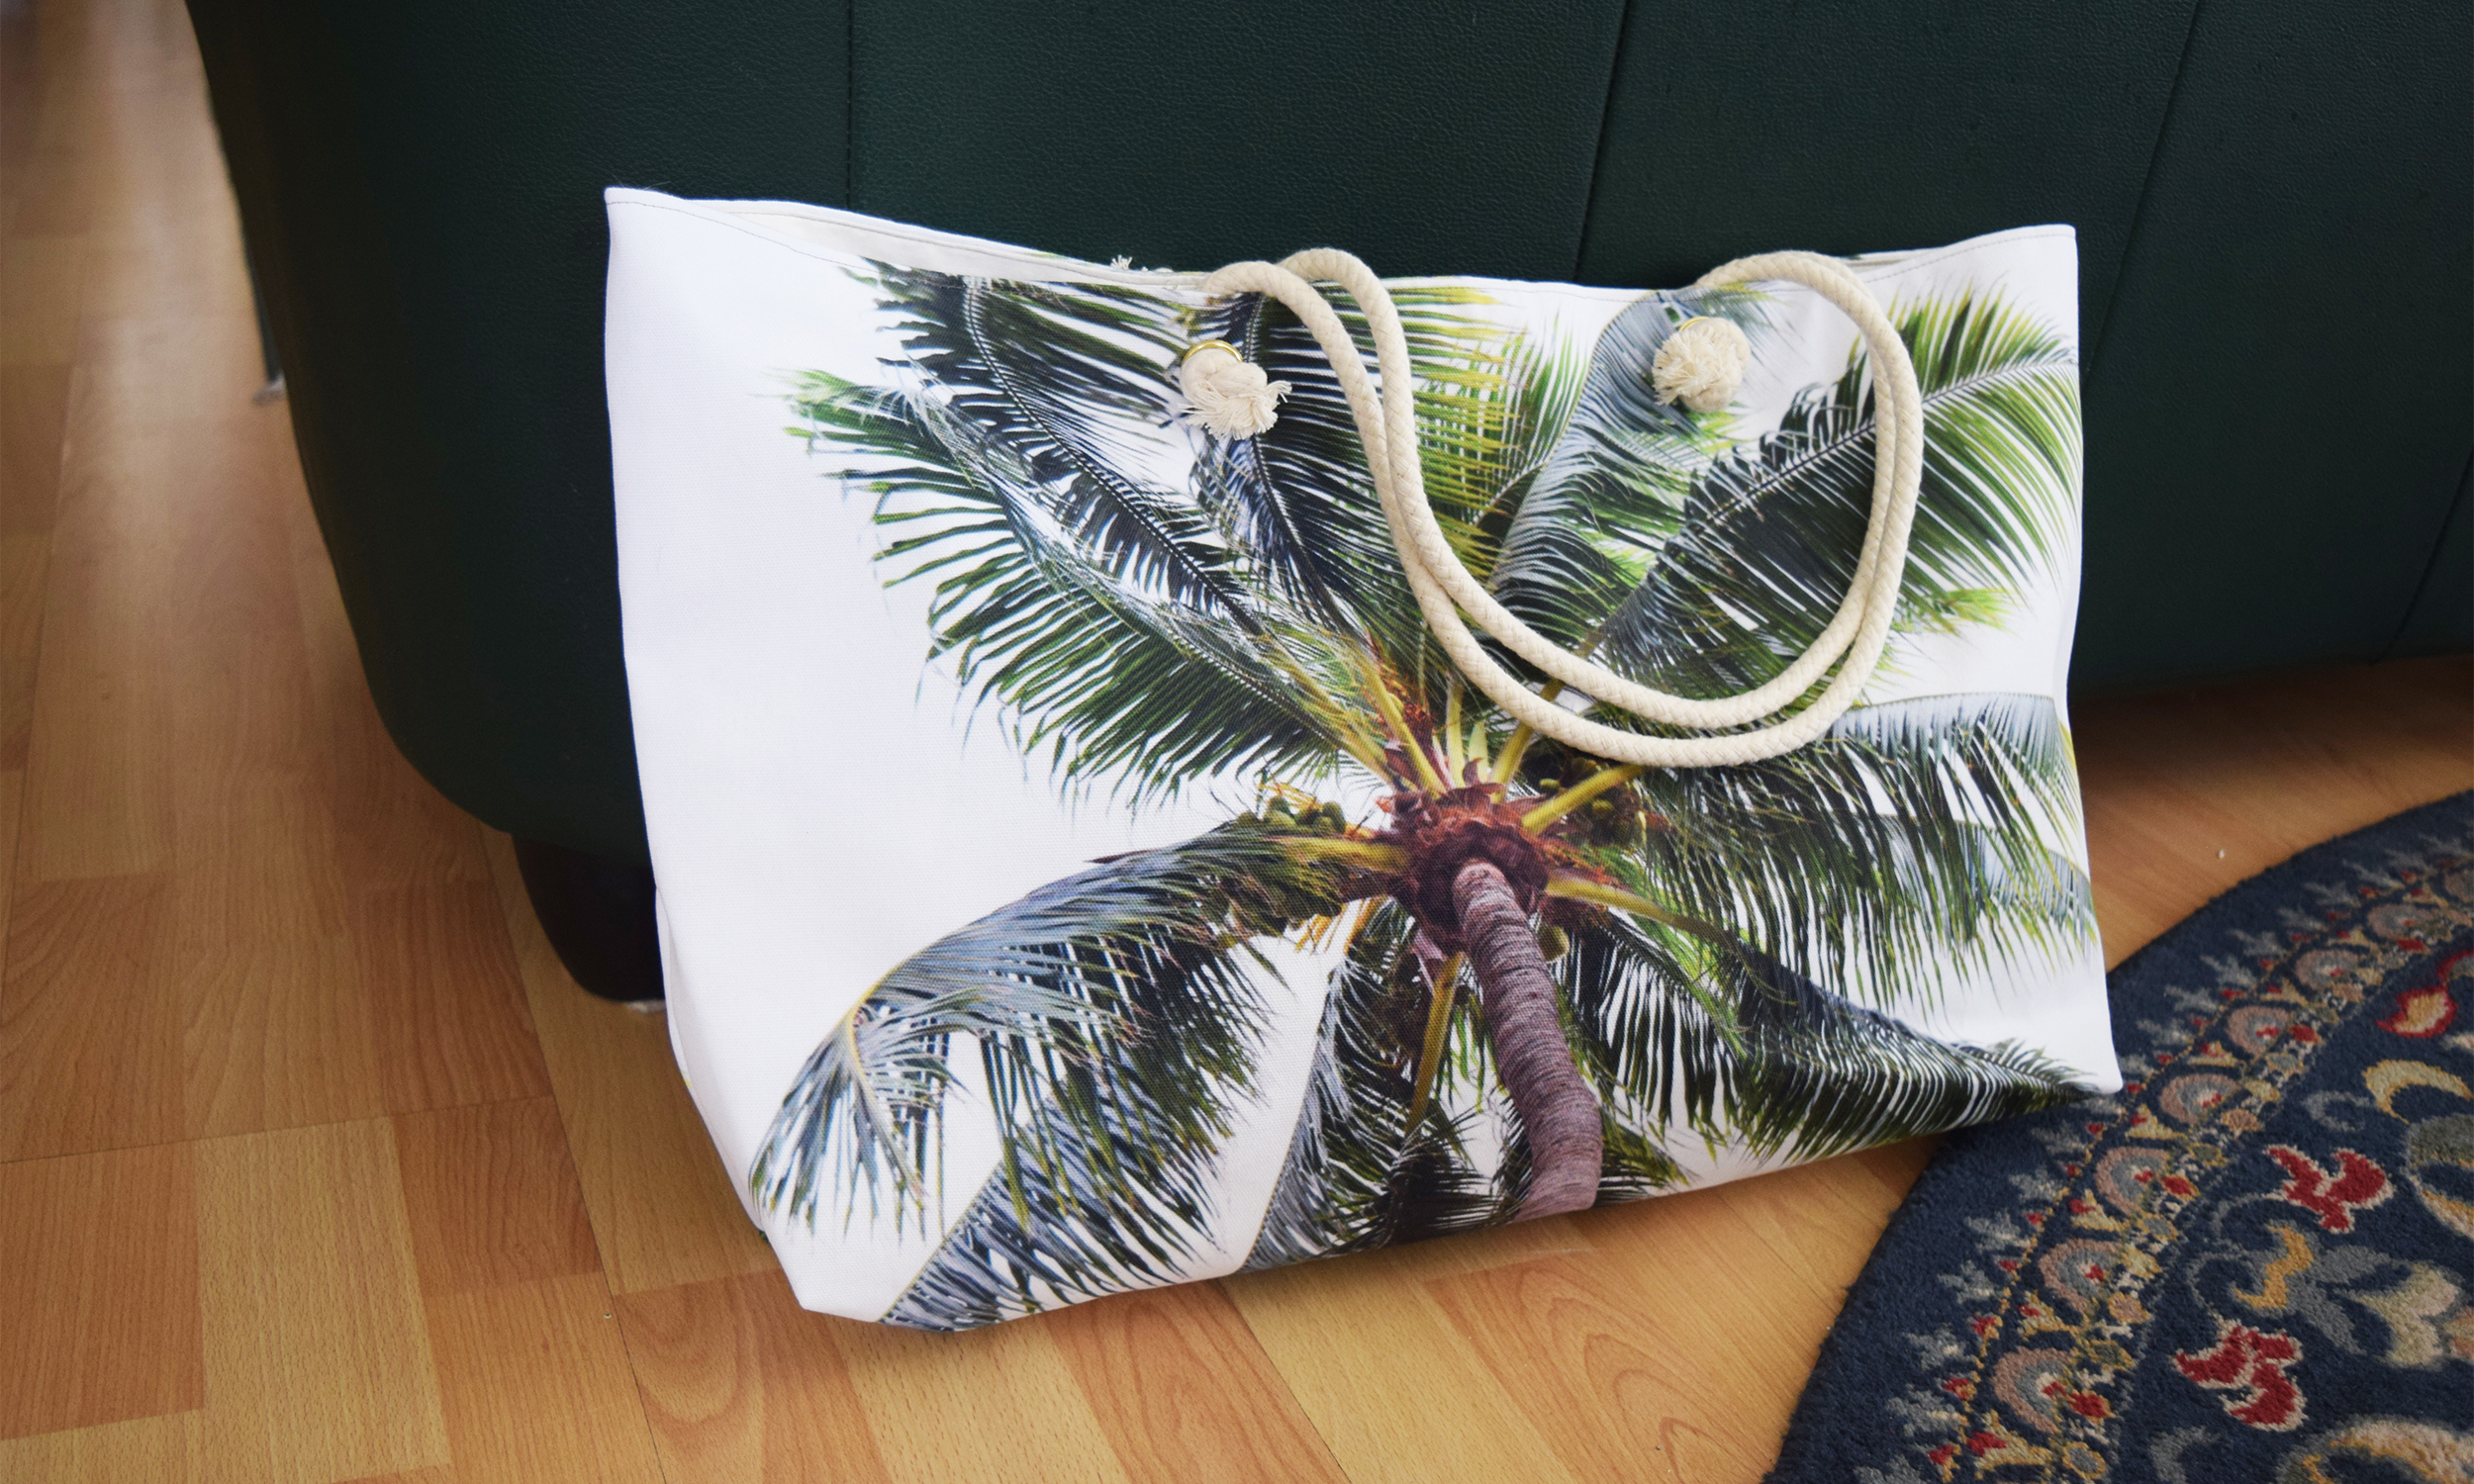 Caribbean Palm Weekender Tote against Couch 2500x1500.jpg